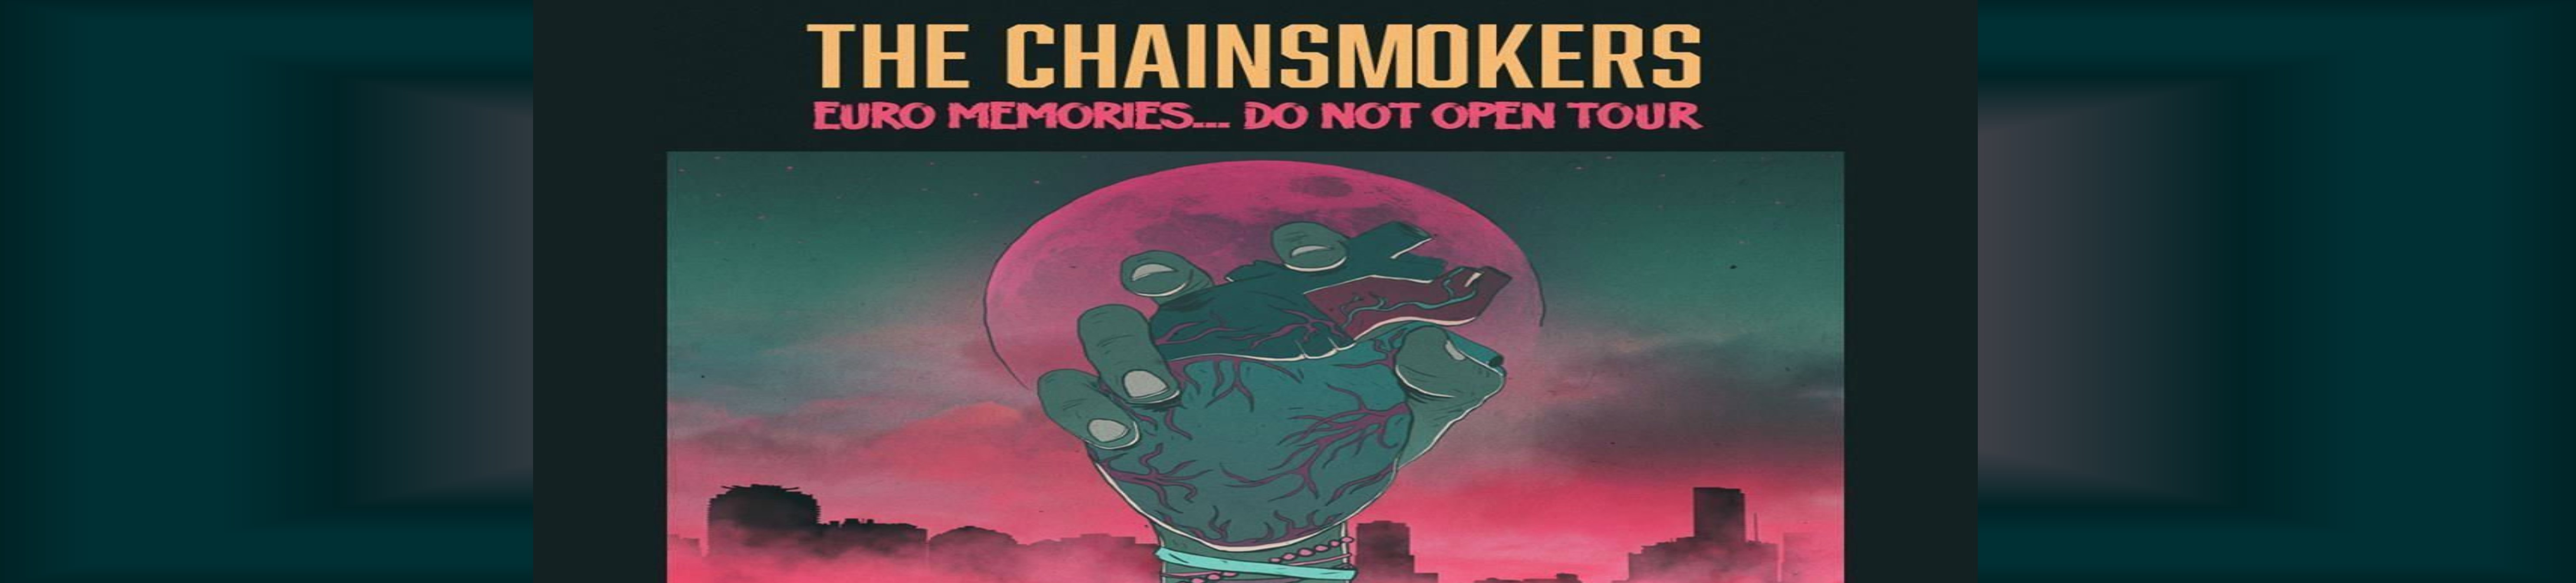 The-Chain-Smokers-2018-